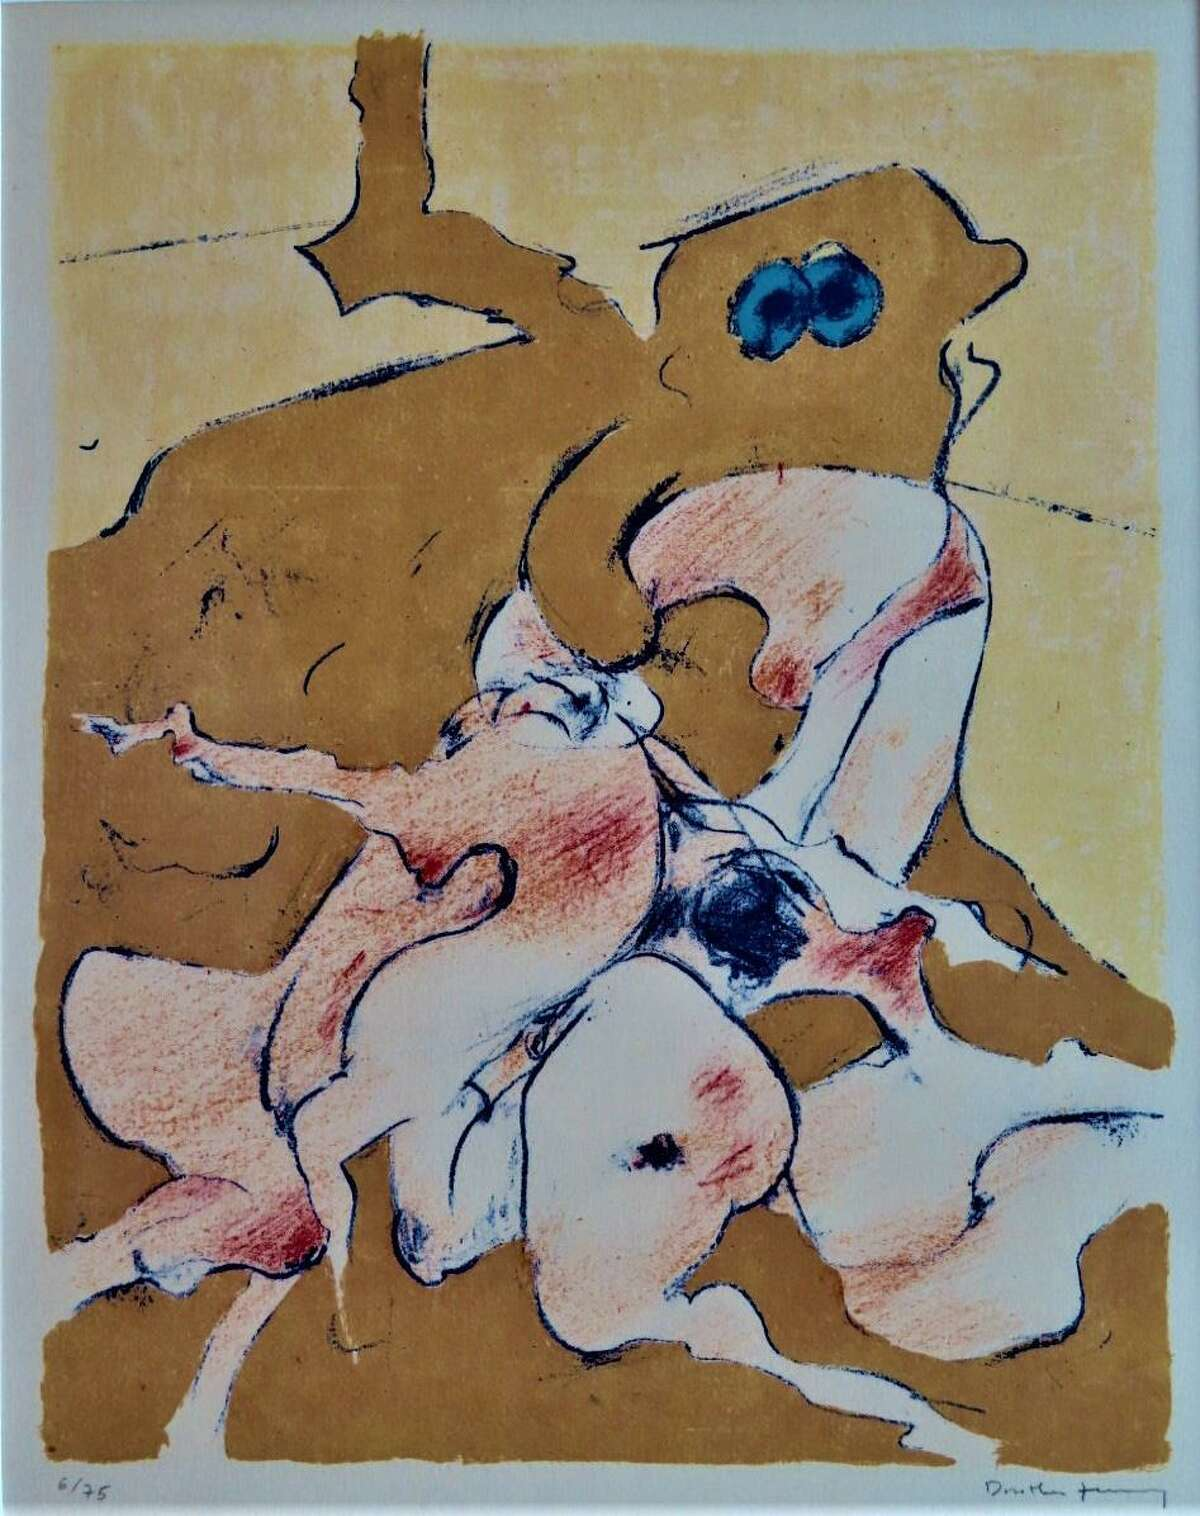 """""""Composition,"""" a 1973 etching byDorotheaTanning, is on view in """"Women Surrealists"""" at Redbud Gallery through Aug. 27."""